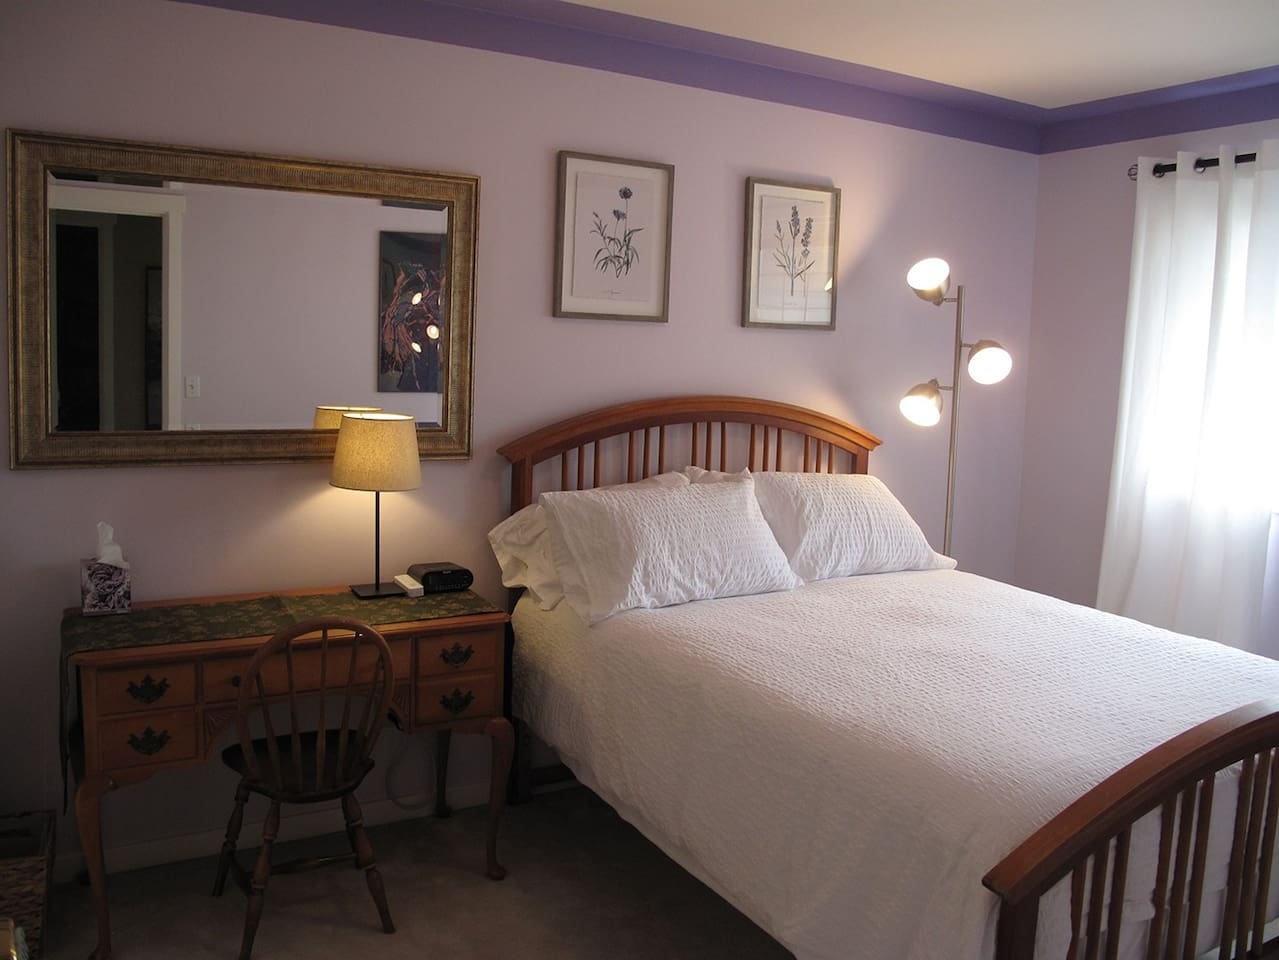 Bedroom has double bed and ample lighting